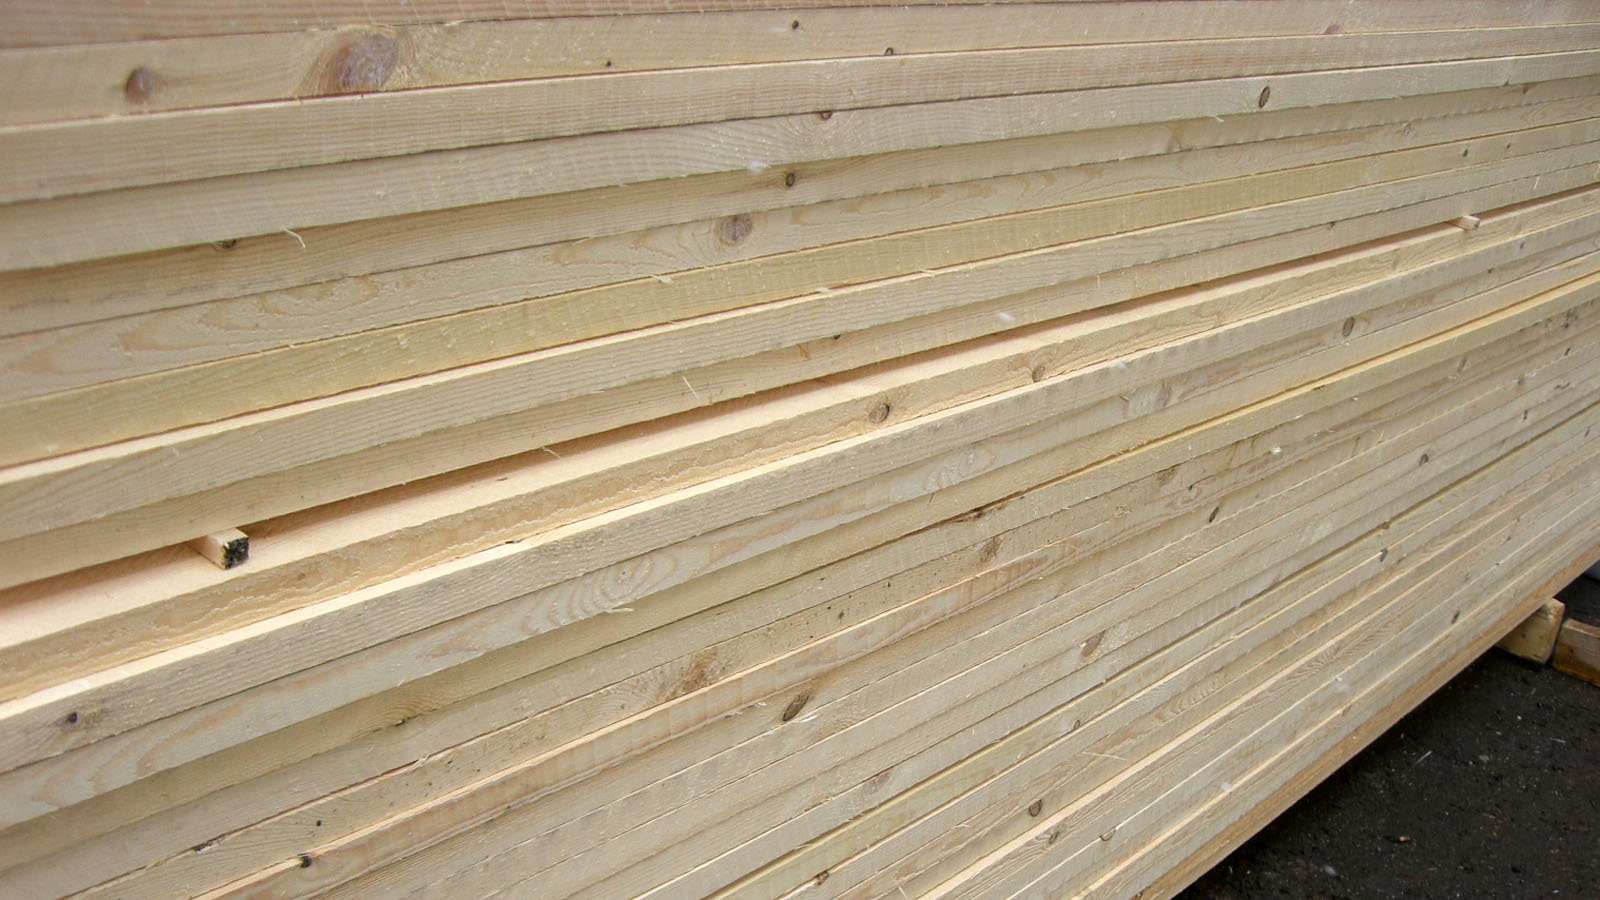 2-sawn-timber-blanks-nothern-europe-timber-production-lameko-impex